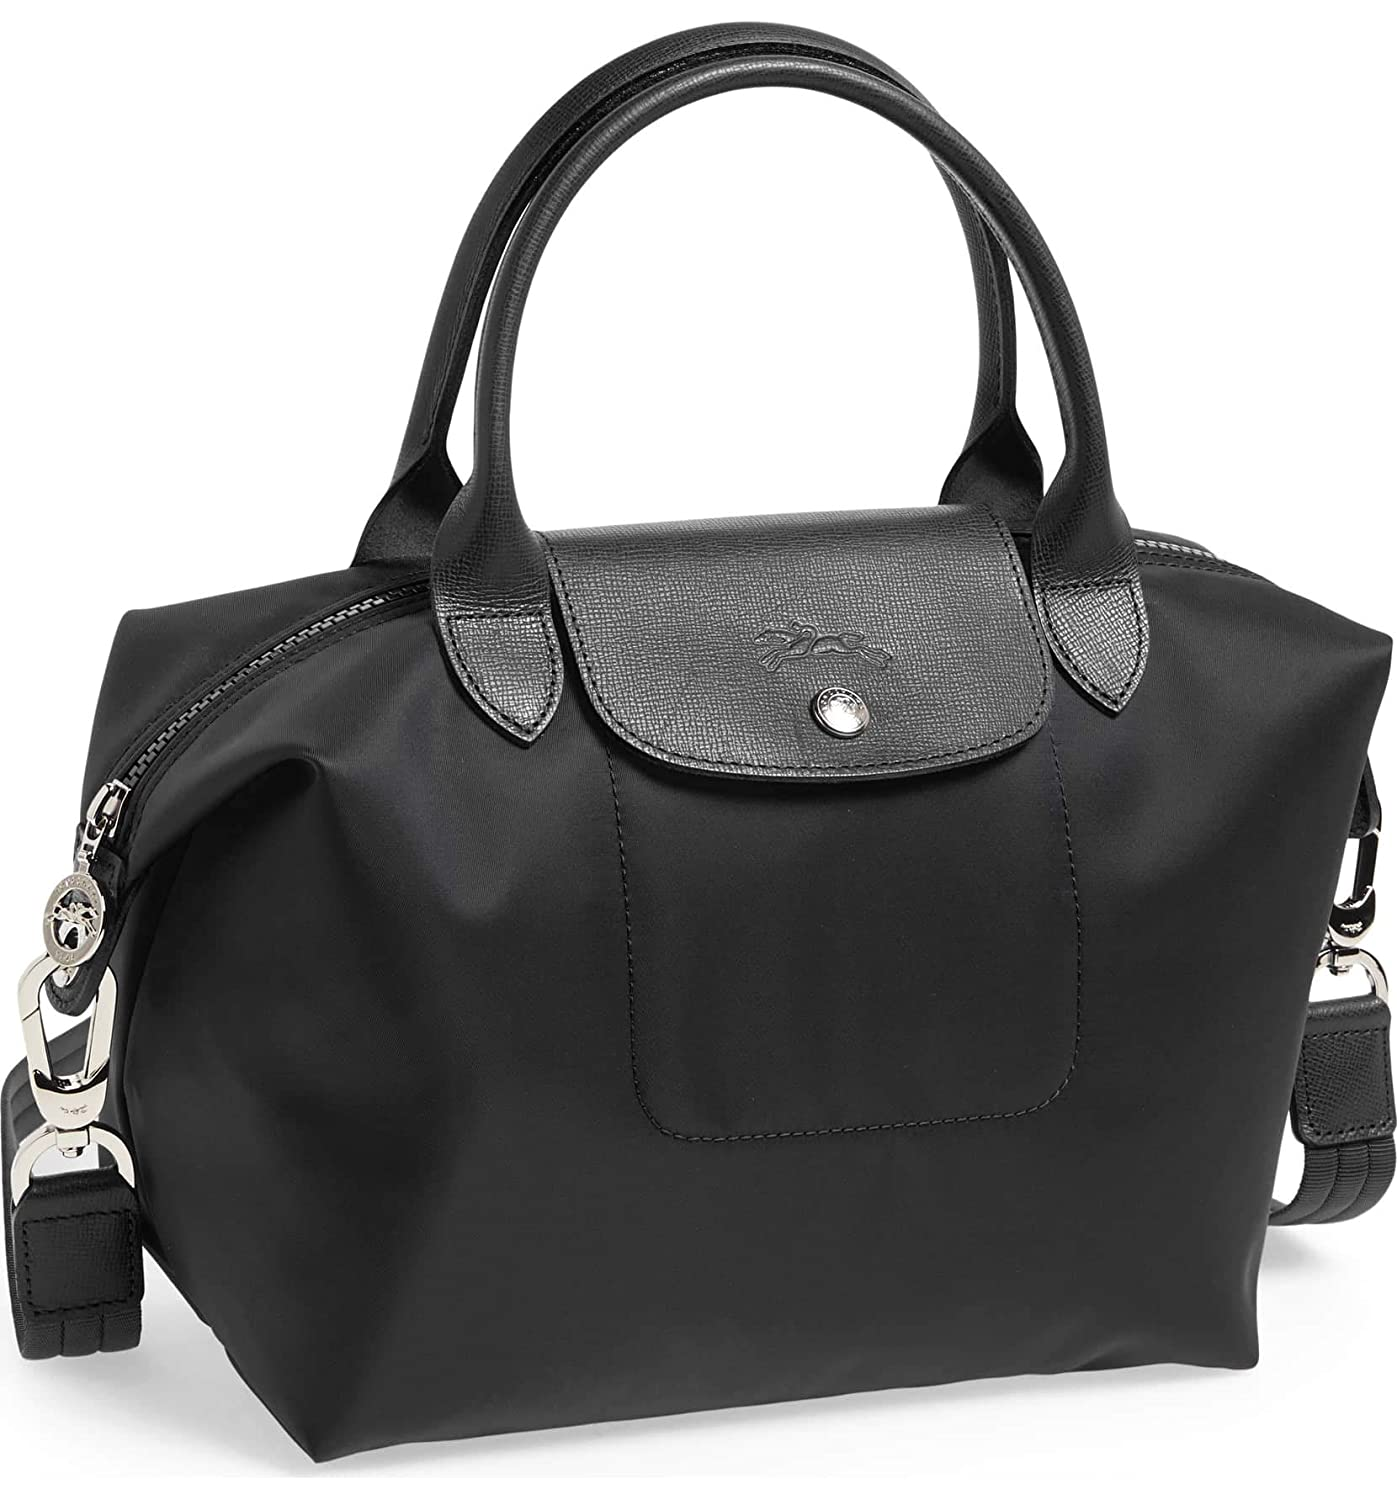 0a6c06fd6a Longchamp 'Le Pliage Neo' Nylon Top Handle Tote Shoulder Bag, Black:  Handbags: Amazon.com